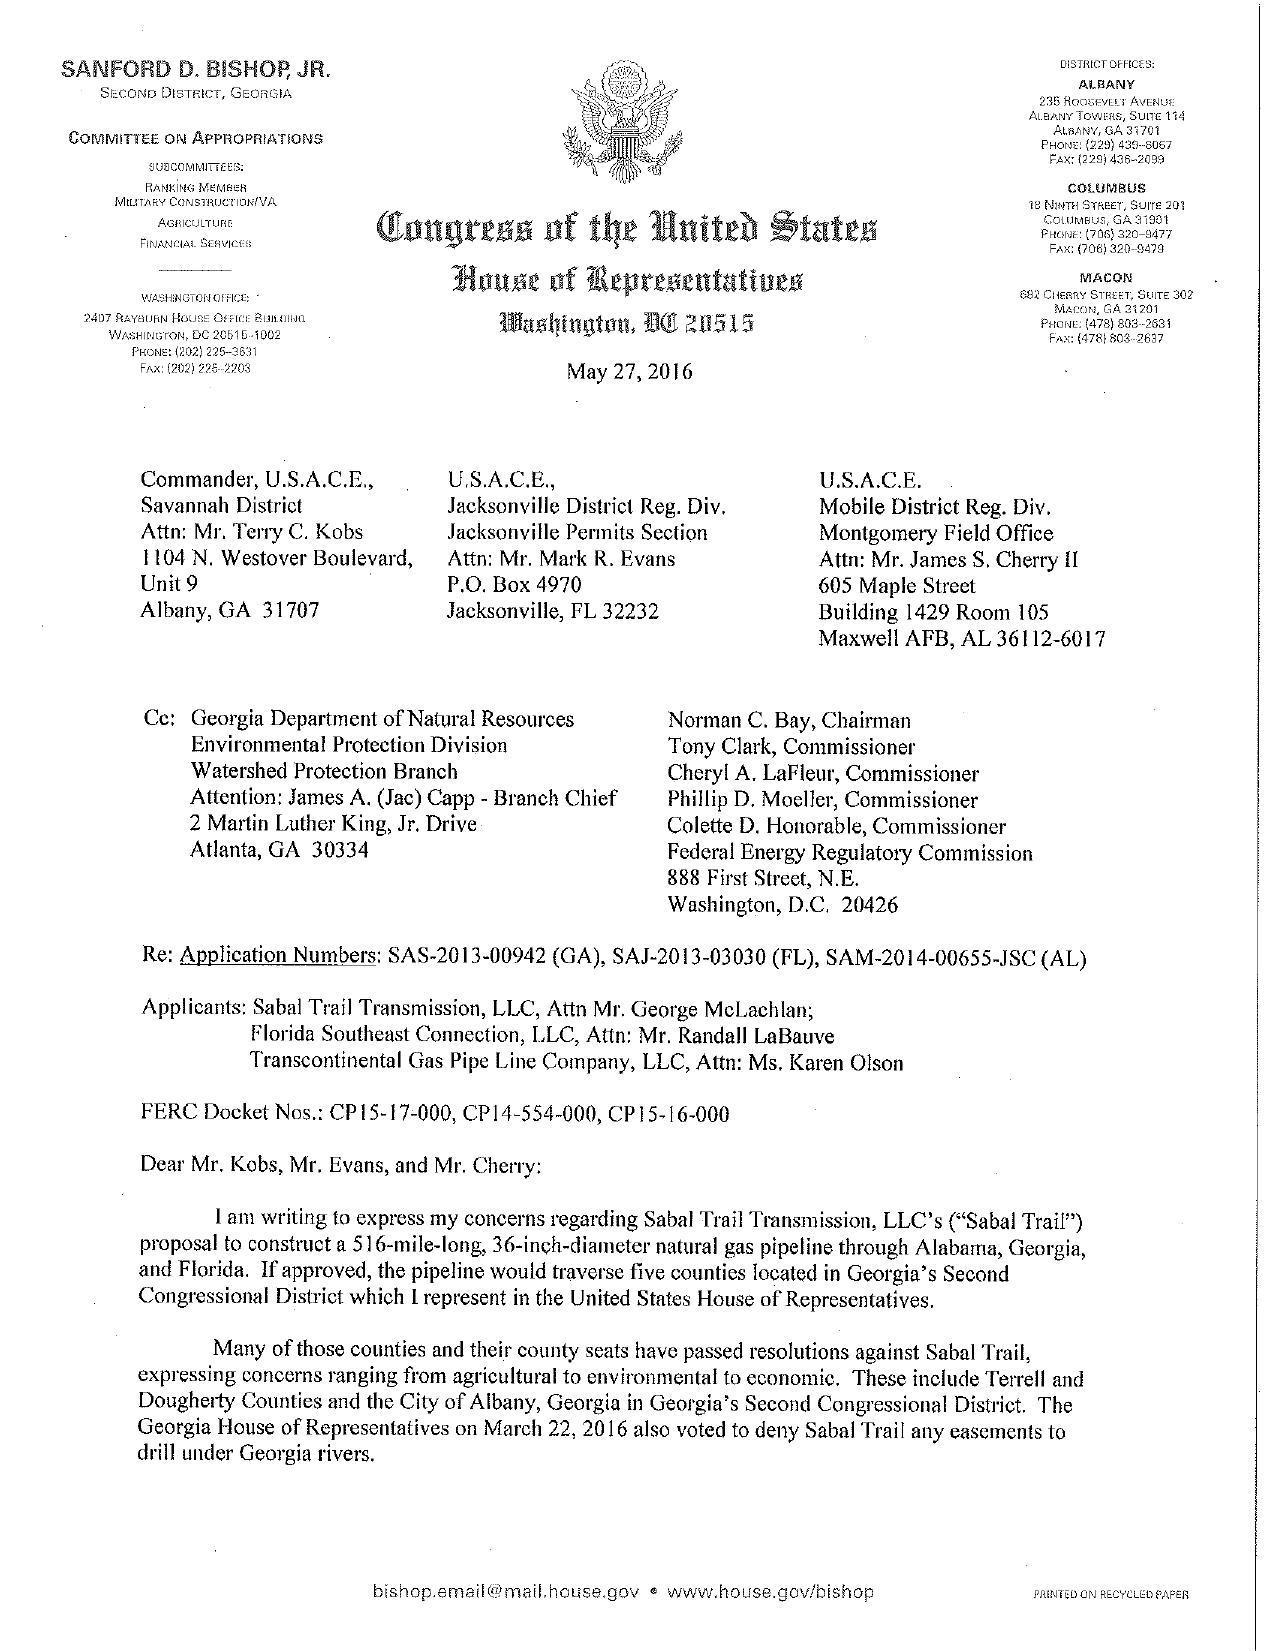 1275x1651 Many counties and county seats have passed resolutions against Sabal Trail, in Request Supplementary Environmental Impact Statement, by Sanford Bishop, 27 May 2016